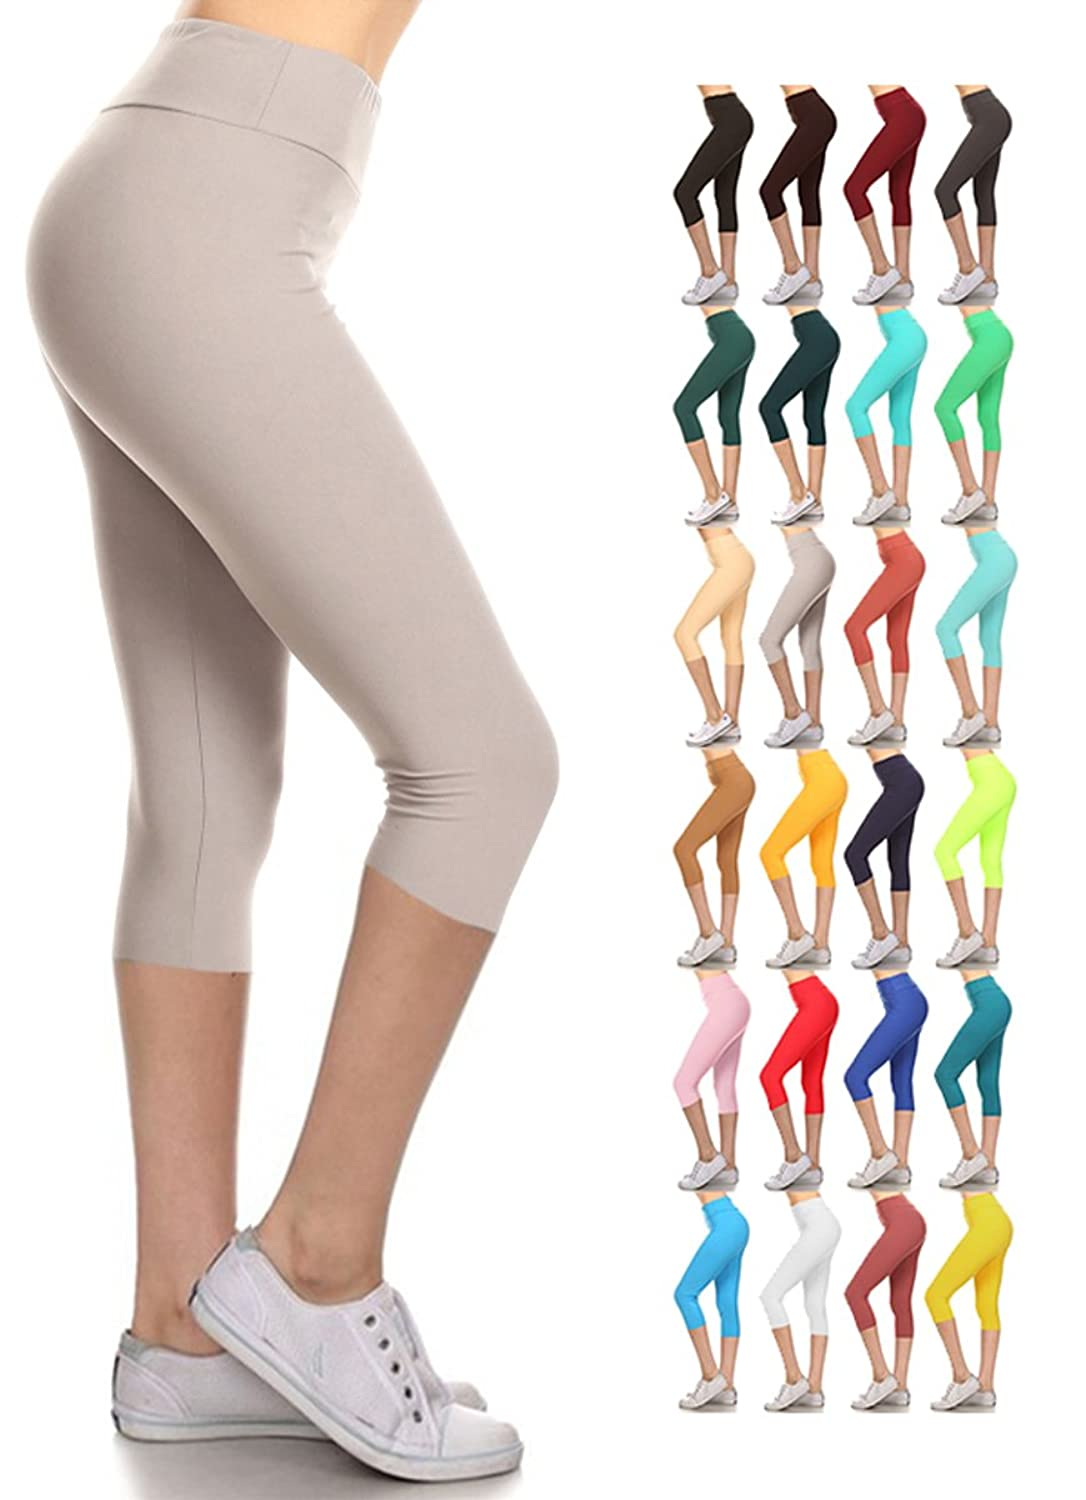 252ae7fad1 92% Polyester 8% Spandex / High Quality Soft Fabric One Size Fits Most,  Super Stretch Essential comfort and stylish Yoga Cropped Capri leggings  perfect for ...